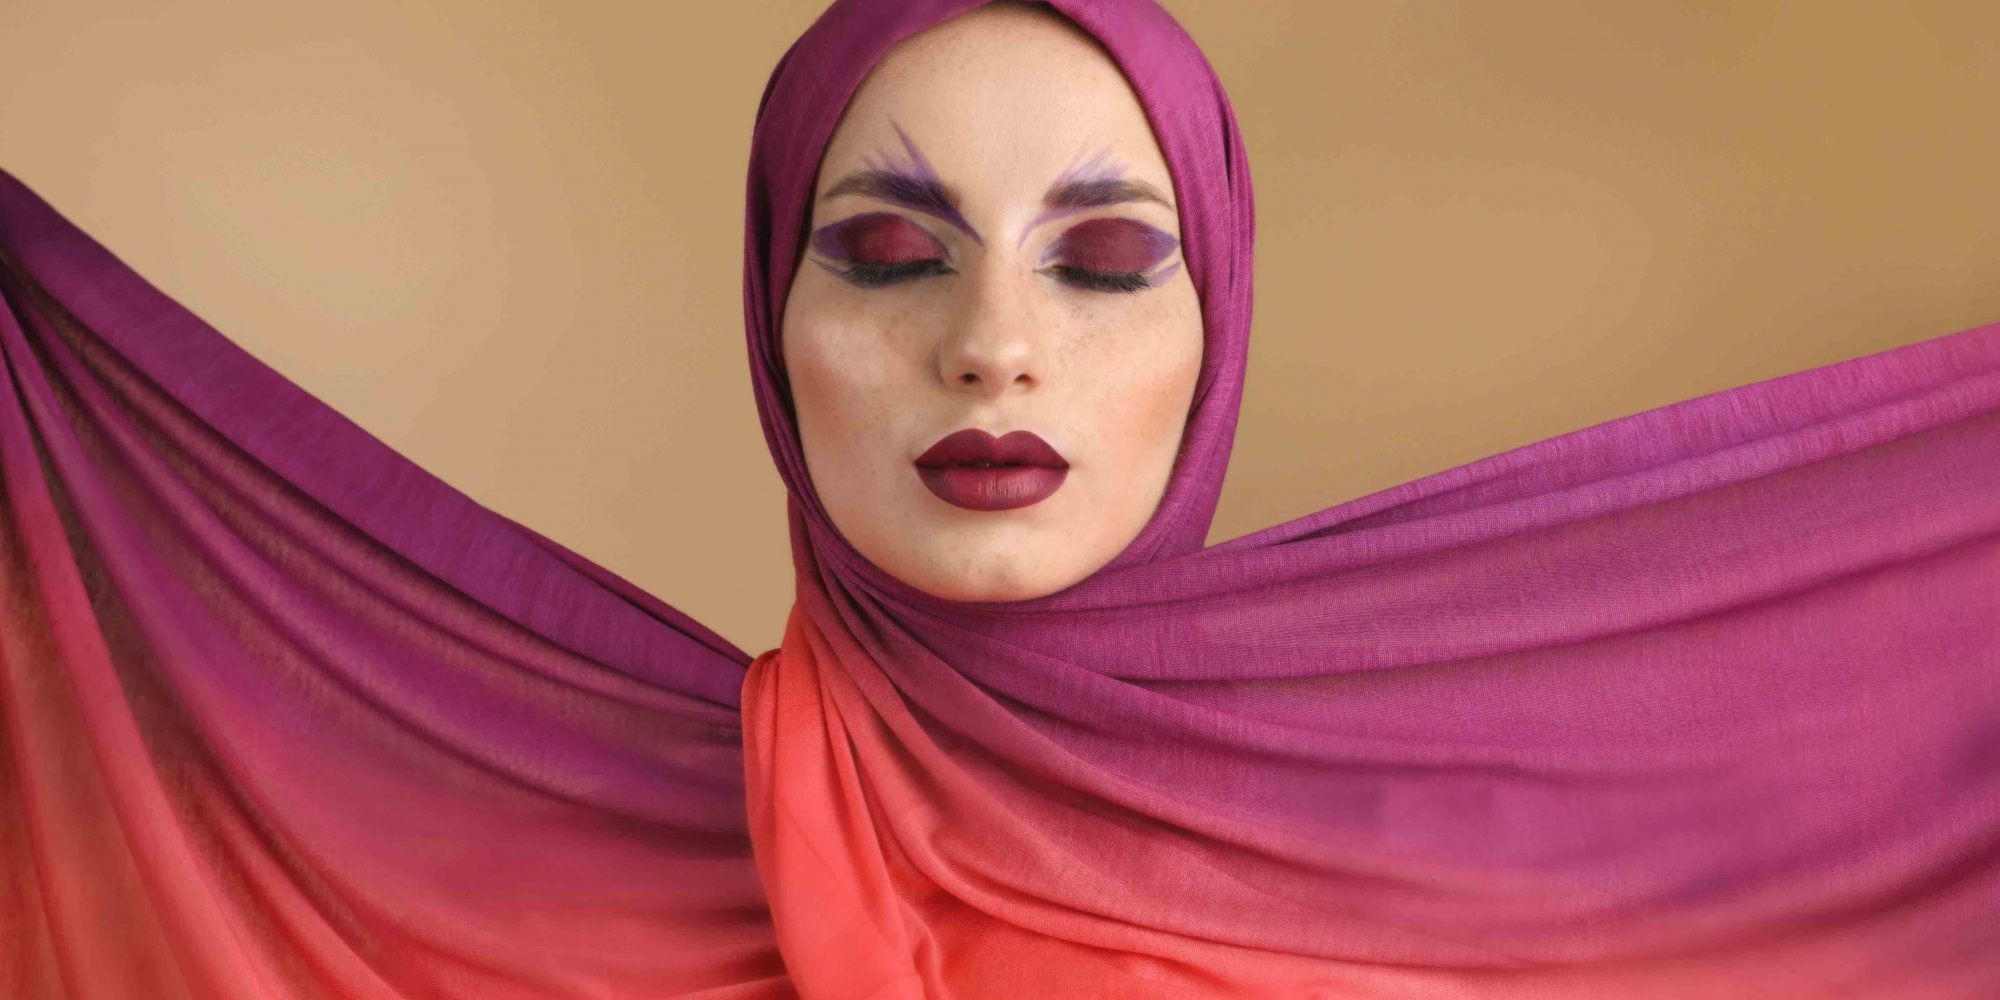 Muslim Women Constitute A Trillion-Dollar Market. New Makeup Brand Shade M Is Directed Squarely At It.